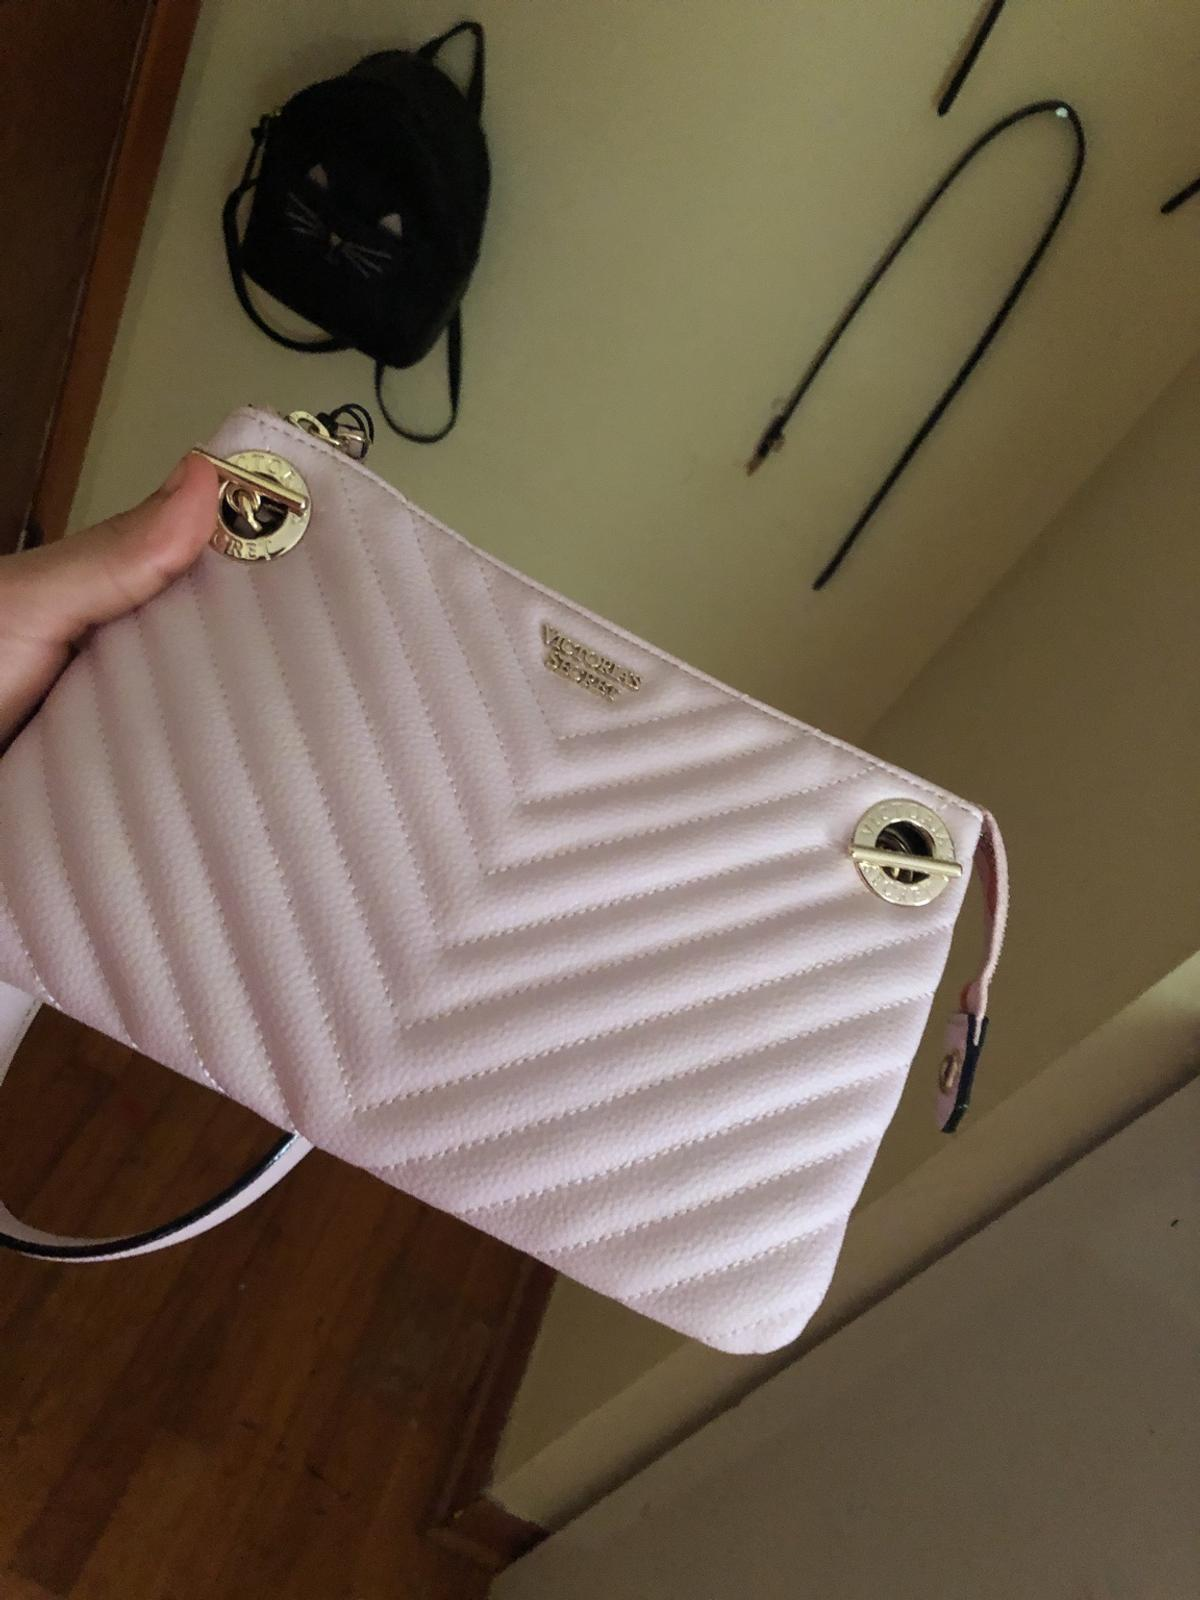 A purse from the brand victora serceret